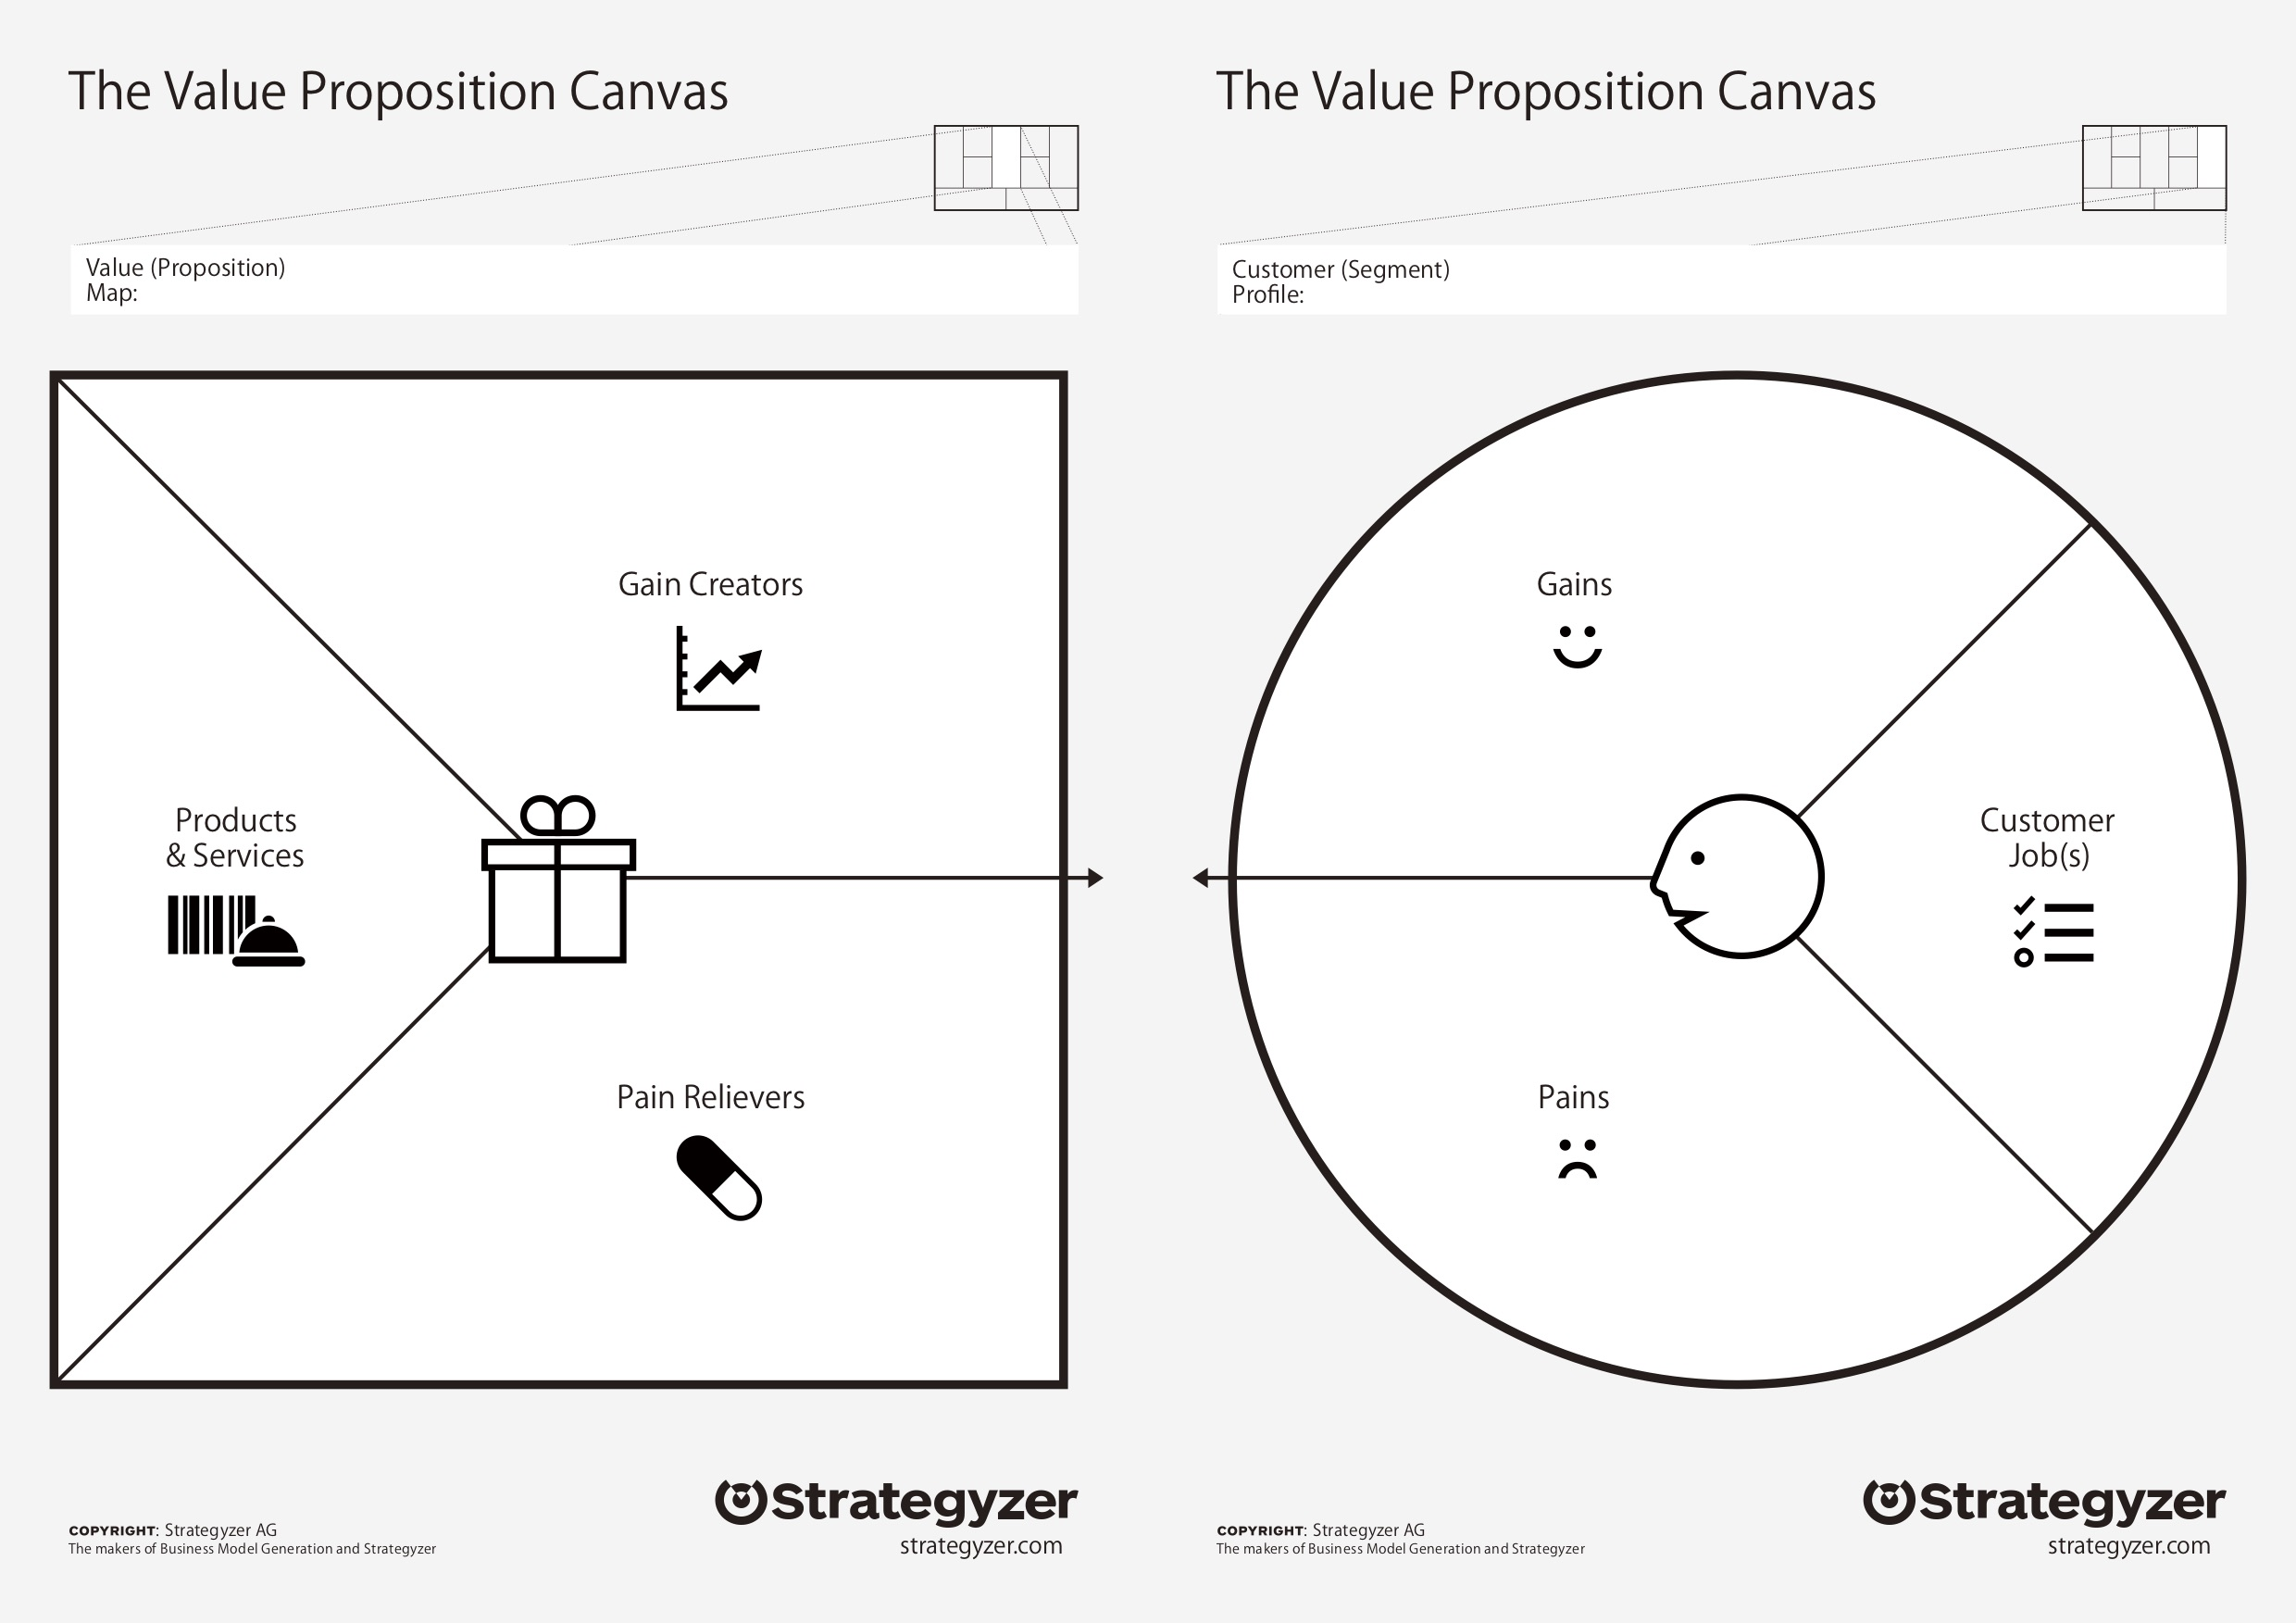 VALUE PROPOSITION - ユーザーが選ぶ価値